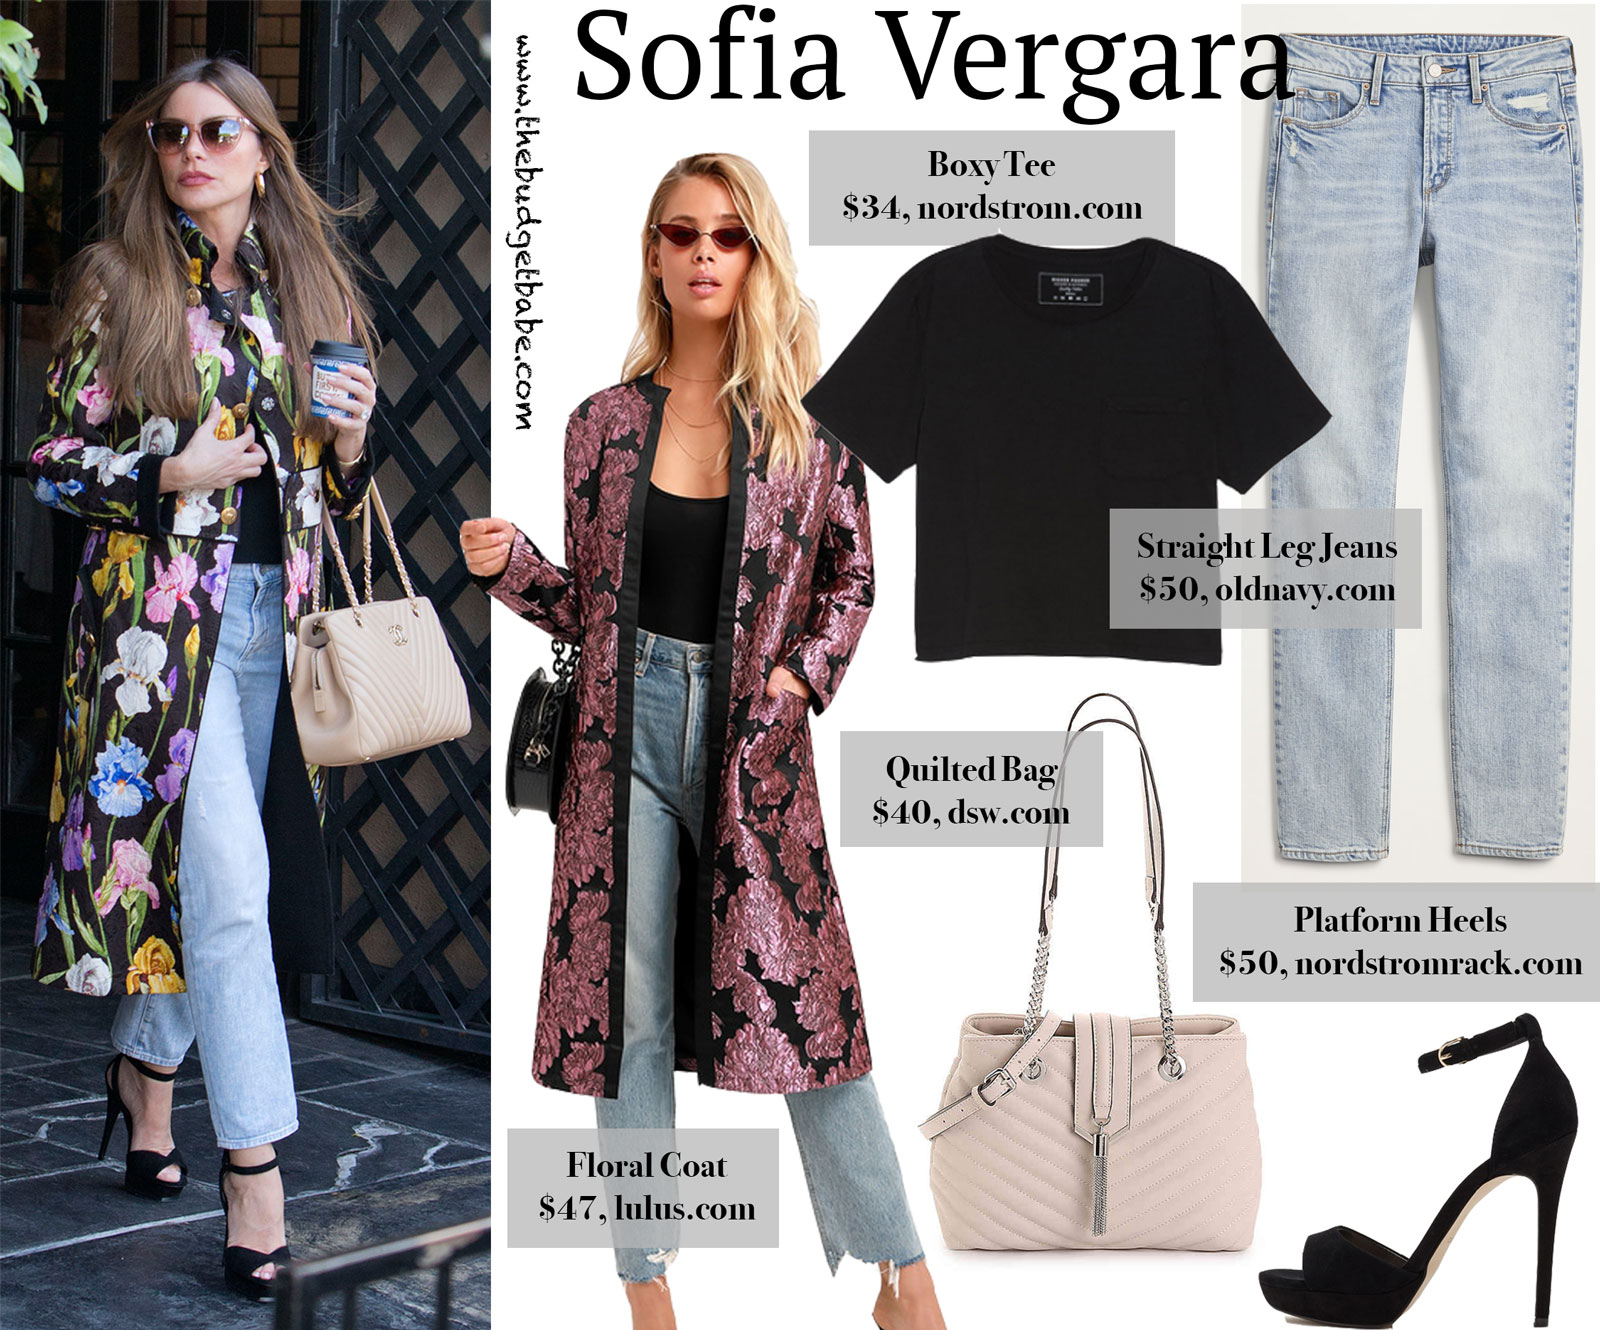 Sofia Vergara Floral Coat Look for Less